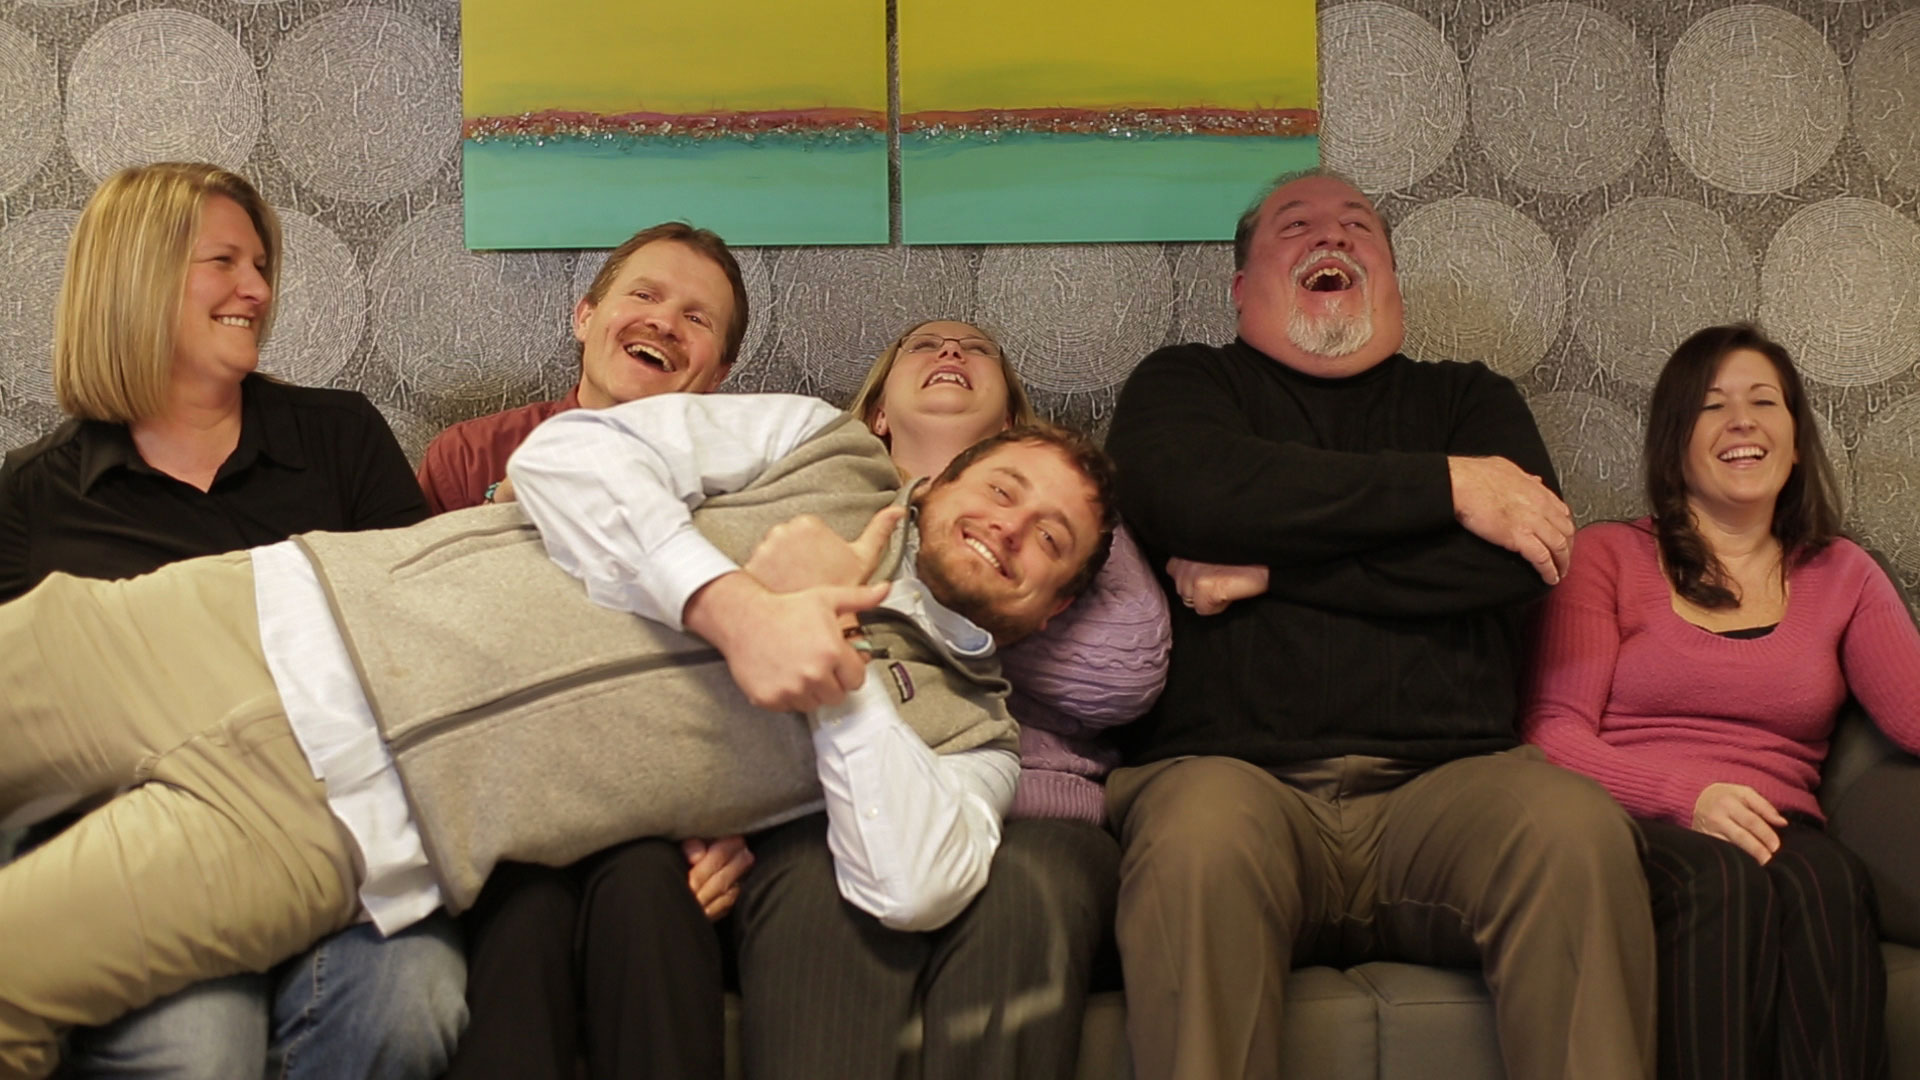 Members of the Ledgeview Partners team get comfortable in front of the camera.